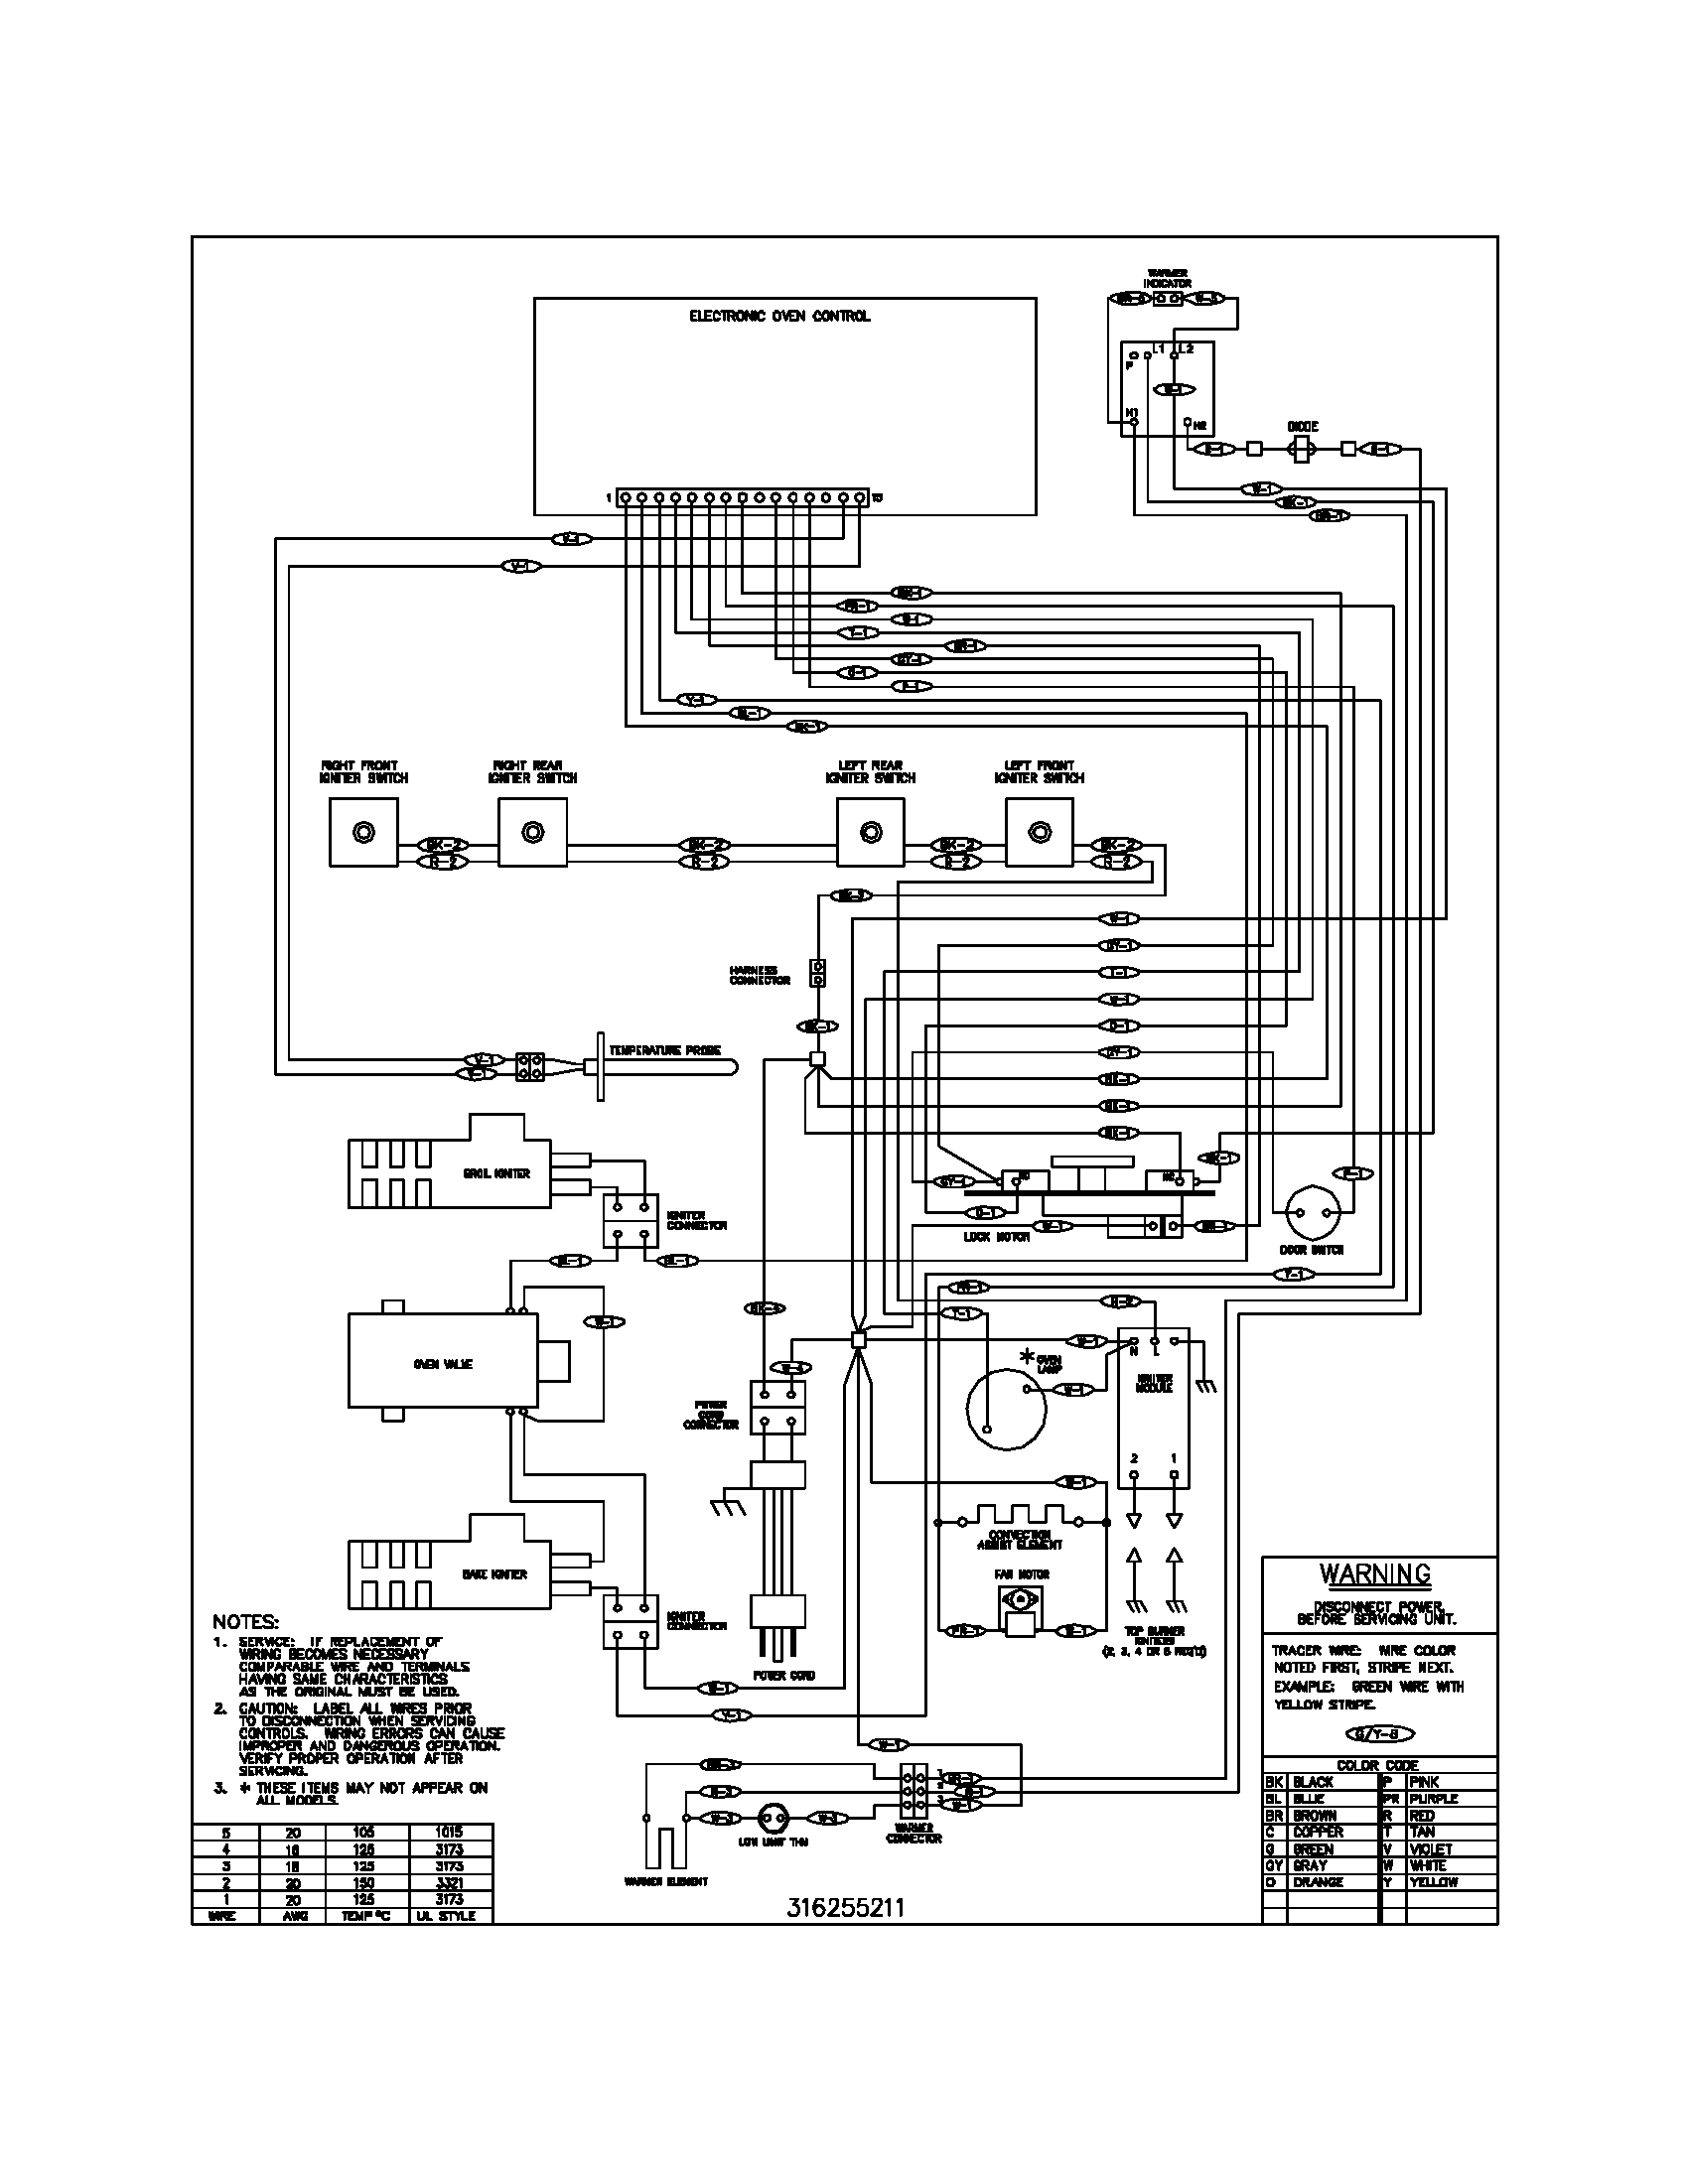 My 9620  Lennox Furnace Wiring Diagram Model Schematic Wiring